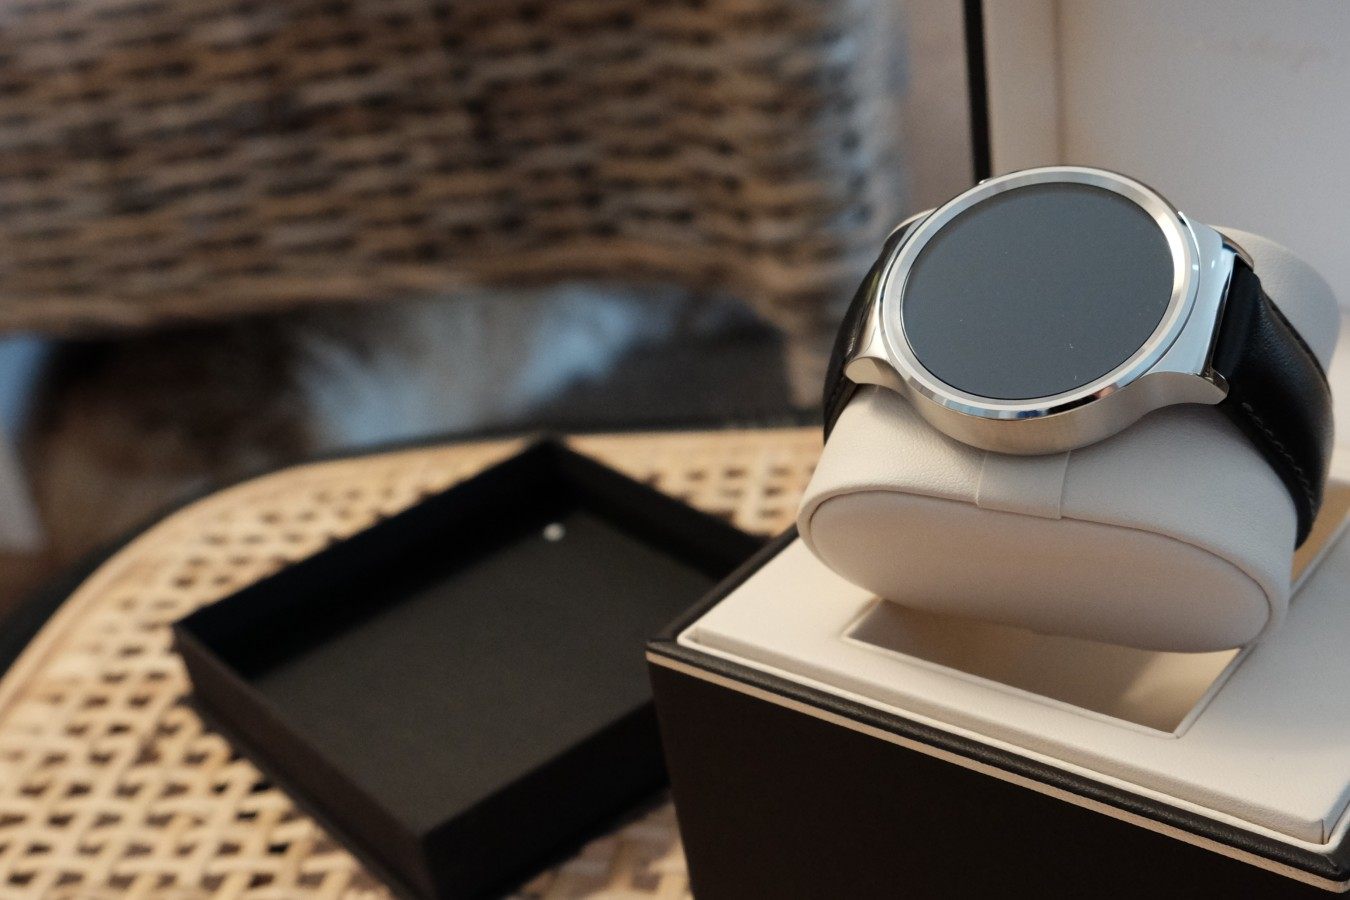 Huawei Watch Boxed